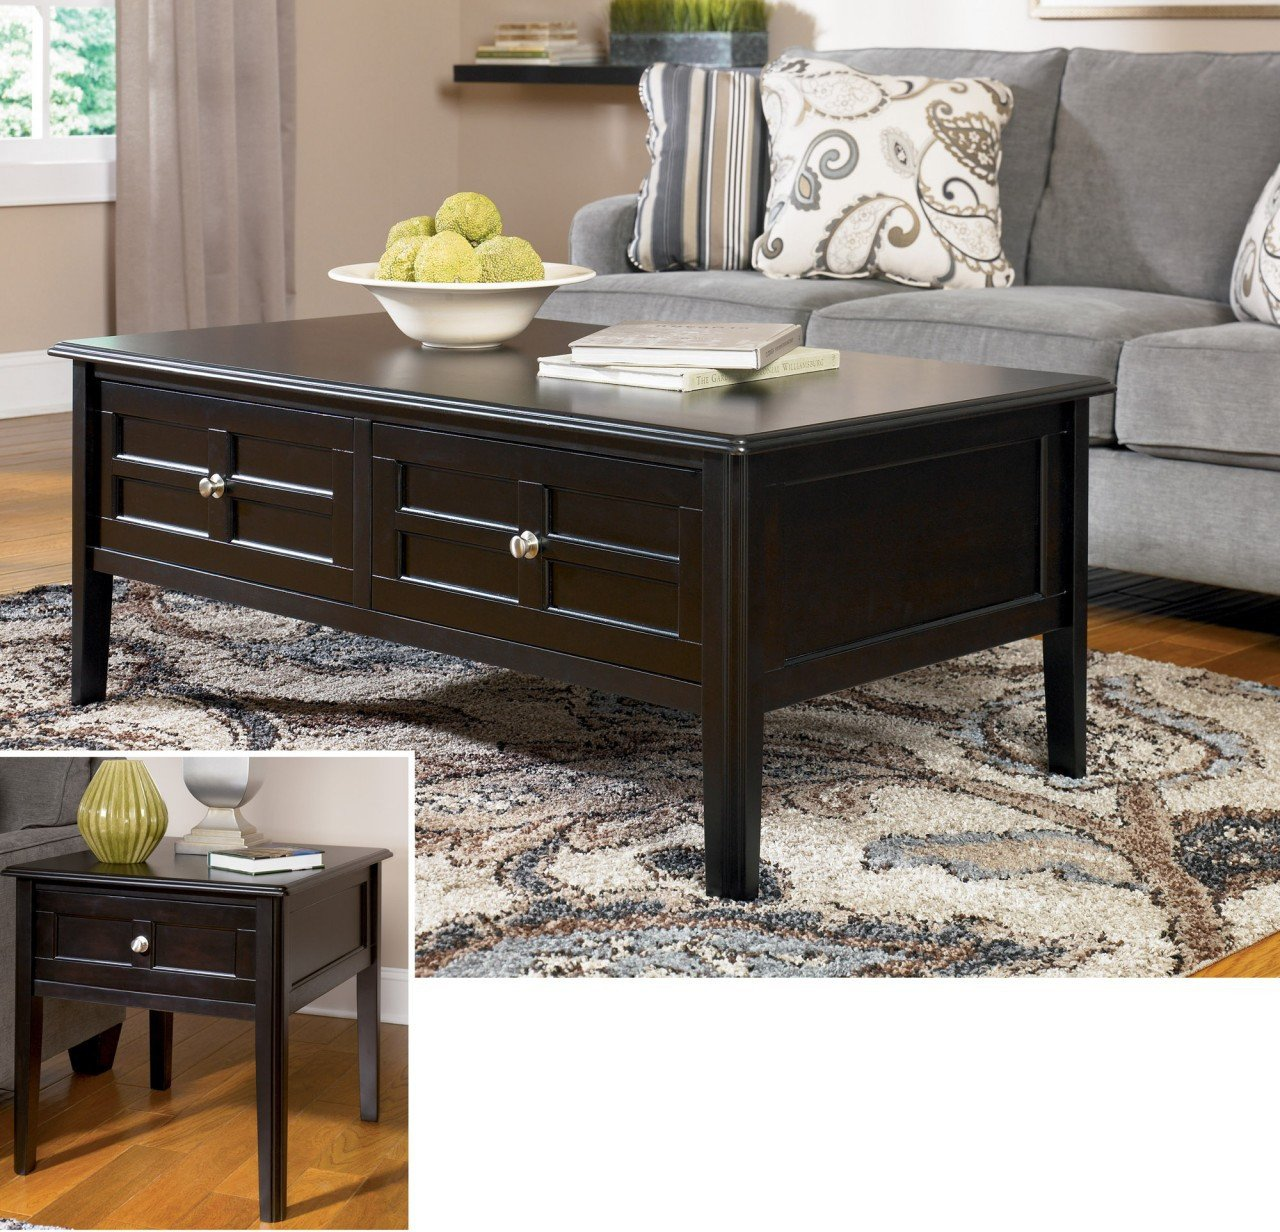 henning metro black coffee table set ashley furniture end tables occasional sets oversized night stands larkinhurst sleeper sofa thomasville good universal curated collection